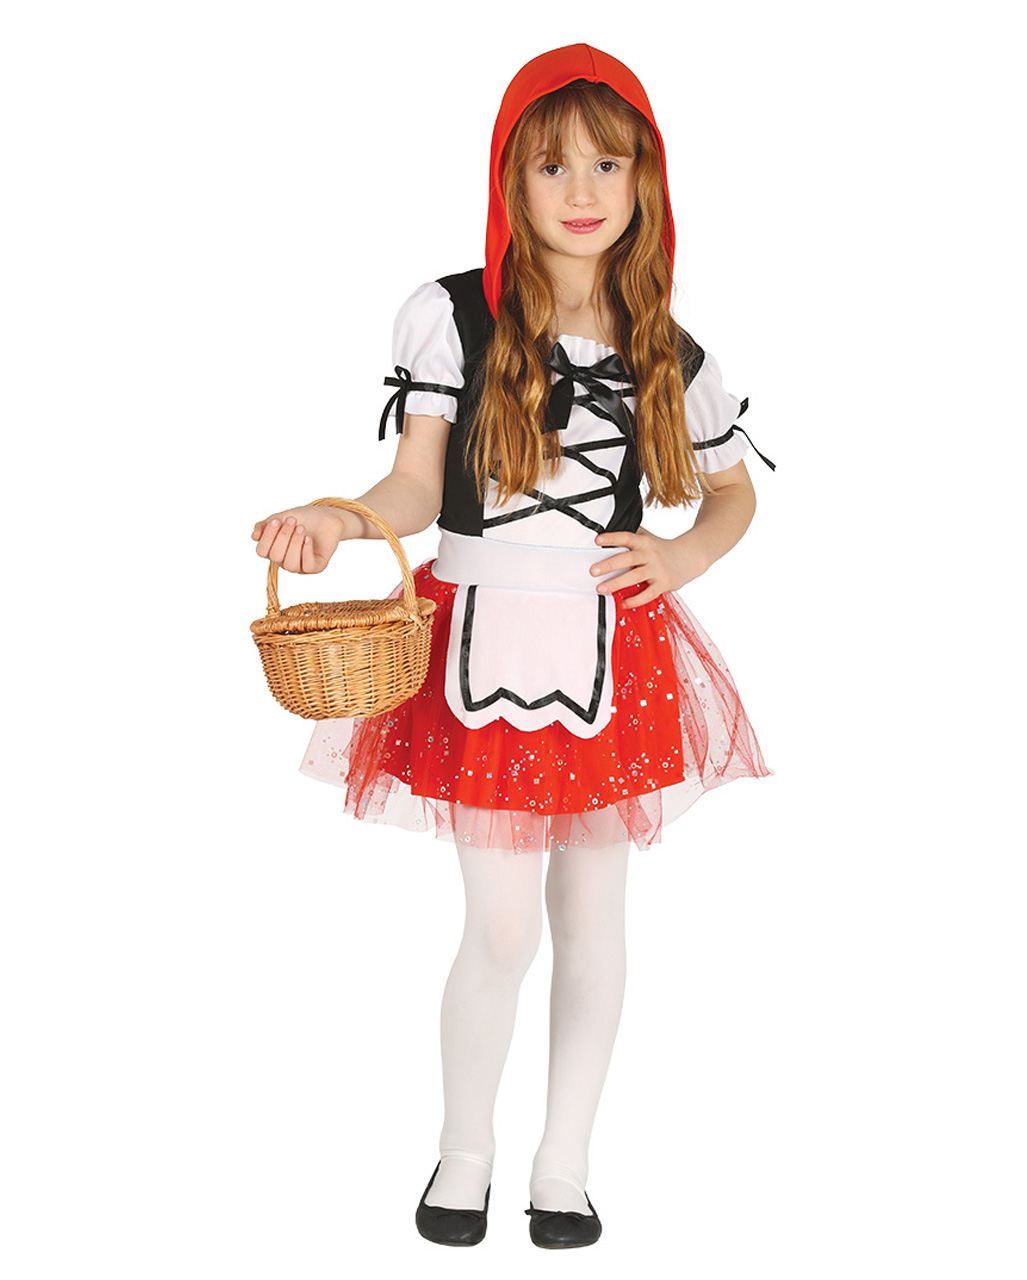 Little Red Riding Hood Kids Costume With Hood for carnival! | horror-shop.com  sc 1 st  Horror-Shop.com & Little Red Riding Hood Kids Costume With Hood for carnival! | horror ...